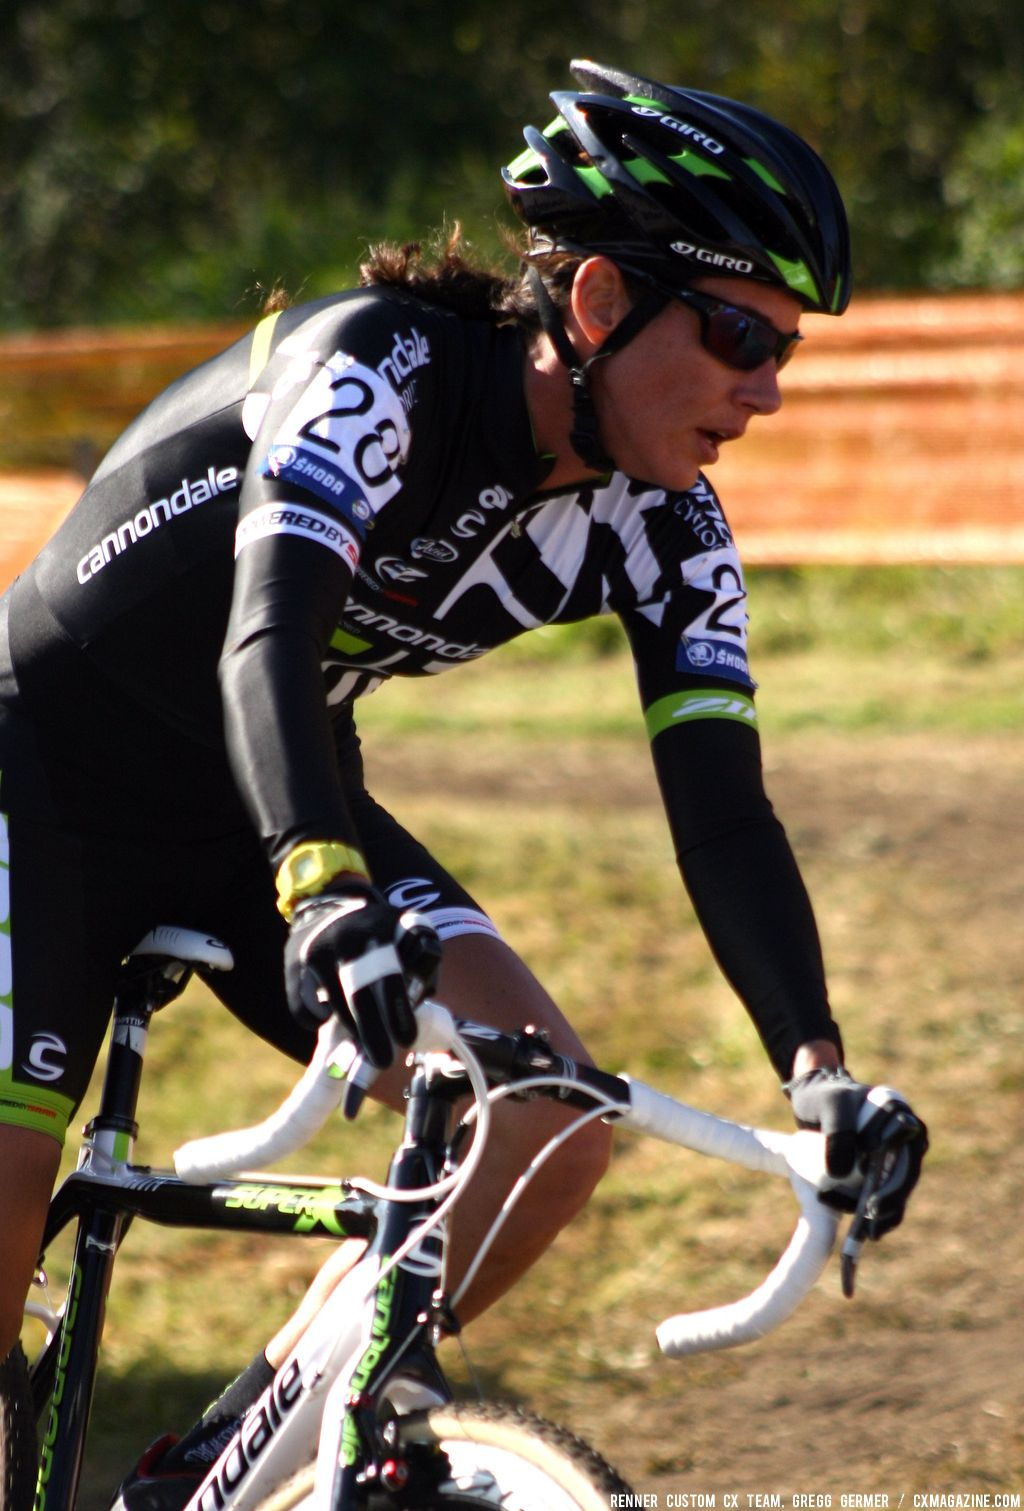 Nicole Duke in the turn. © Renner Custom CX Team, Gregg Germer